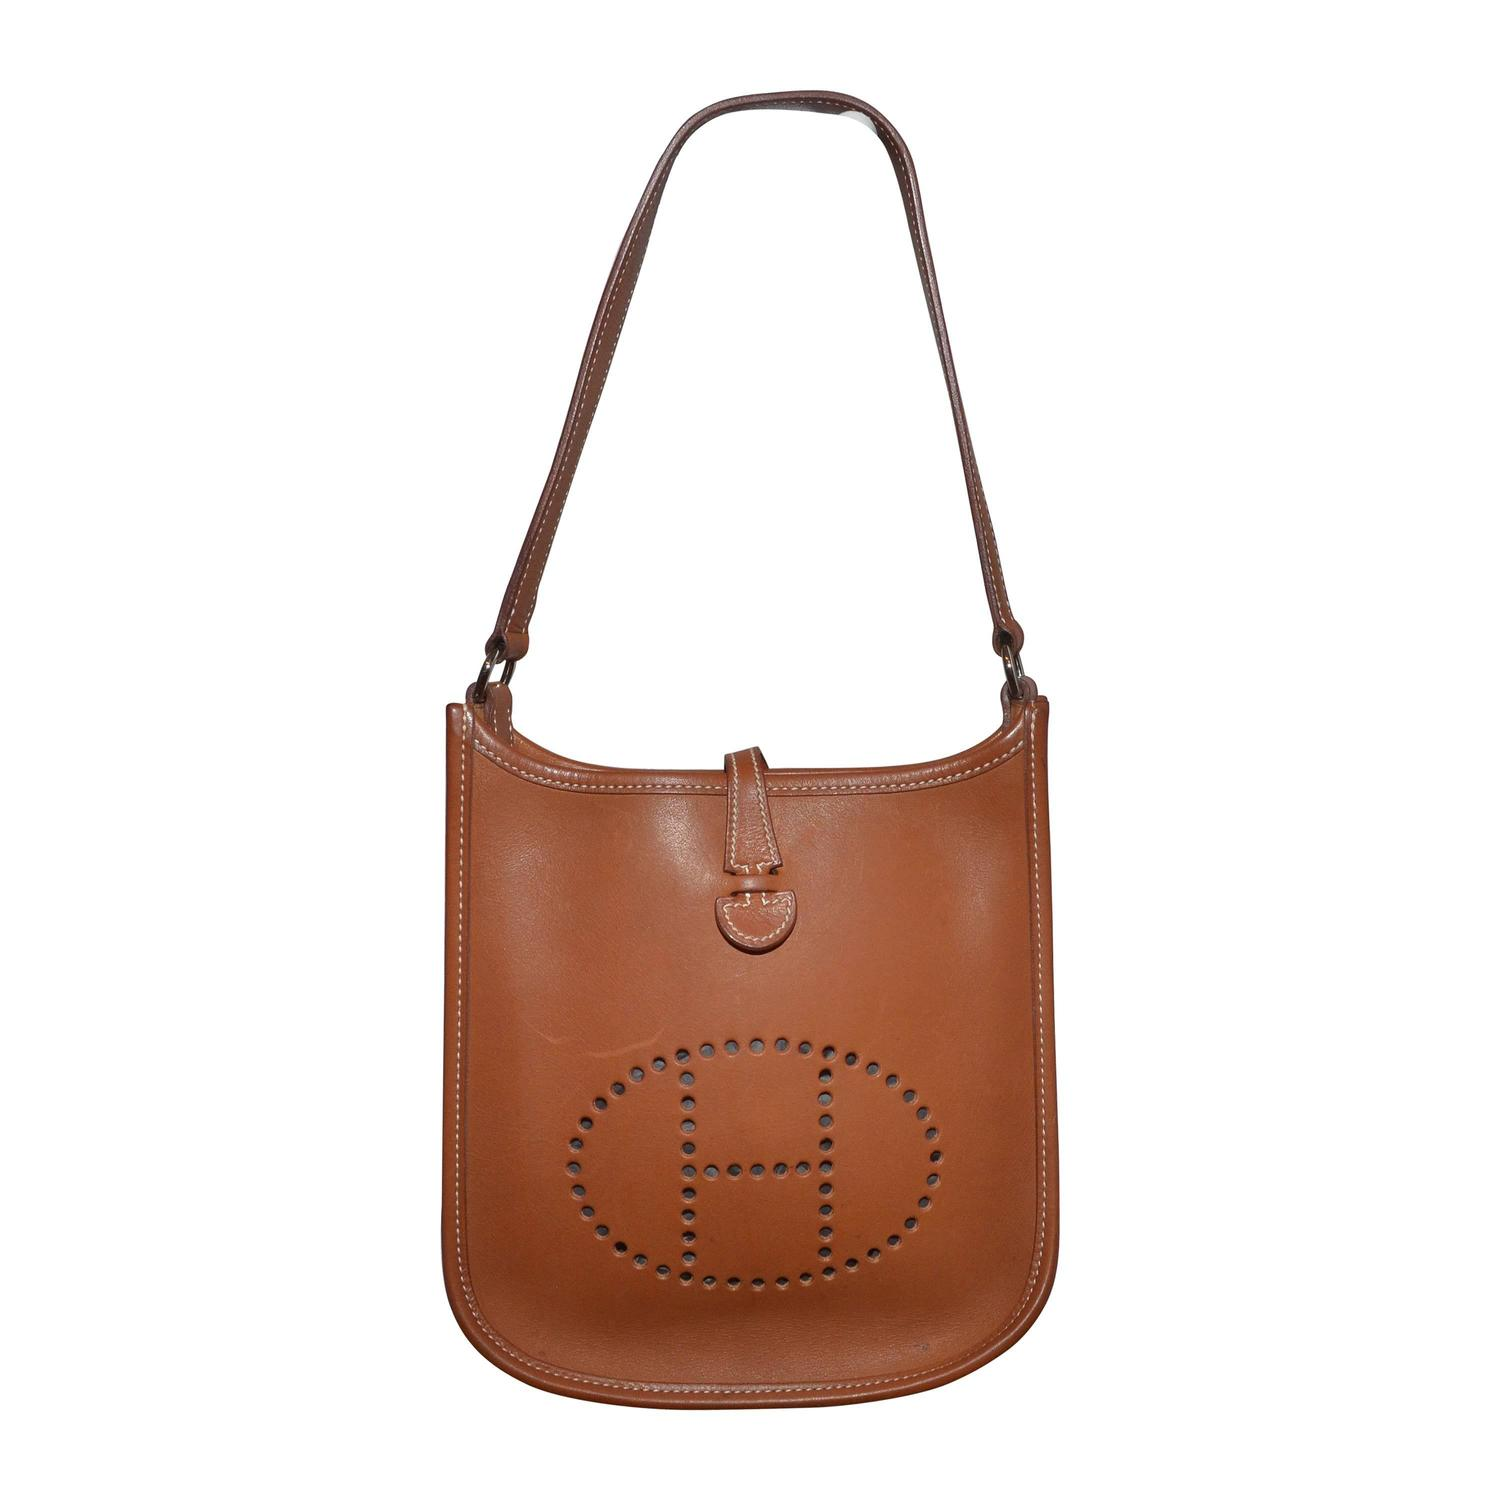 Foxy Couture Handbags and Purses - Carmel-By-The-Sea, CA 93921 ...